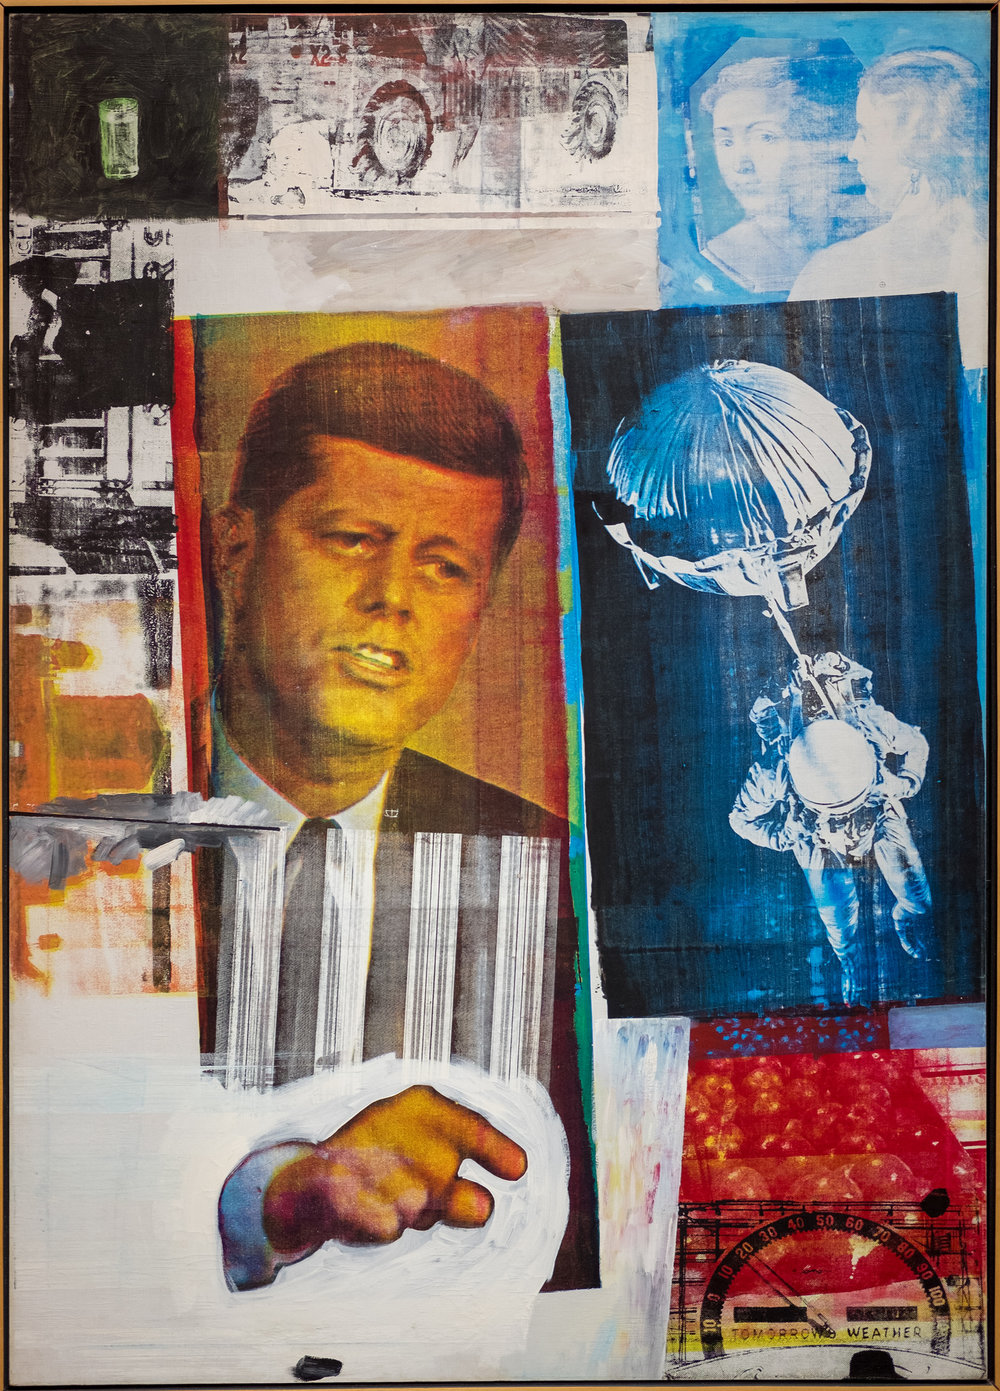 Robert Rauschenberg,  Retroactive II , 1963. Image courtesy of  Flickr user Sharon Mollerus .